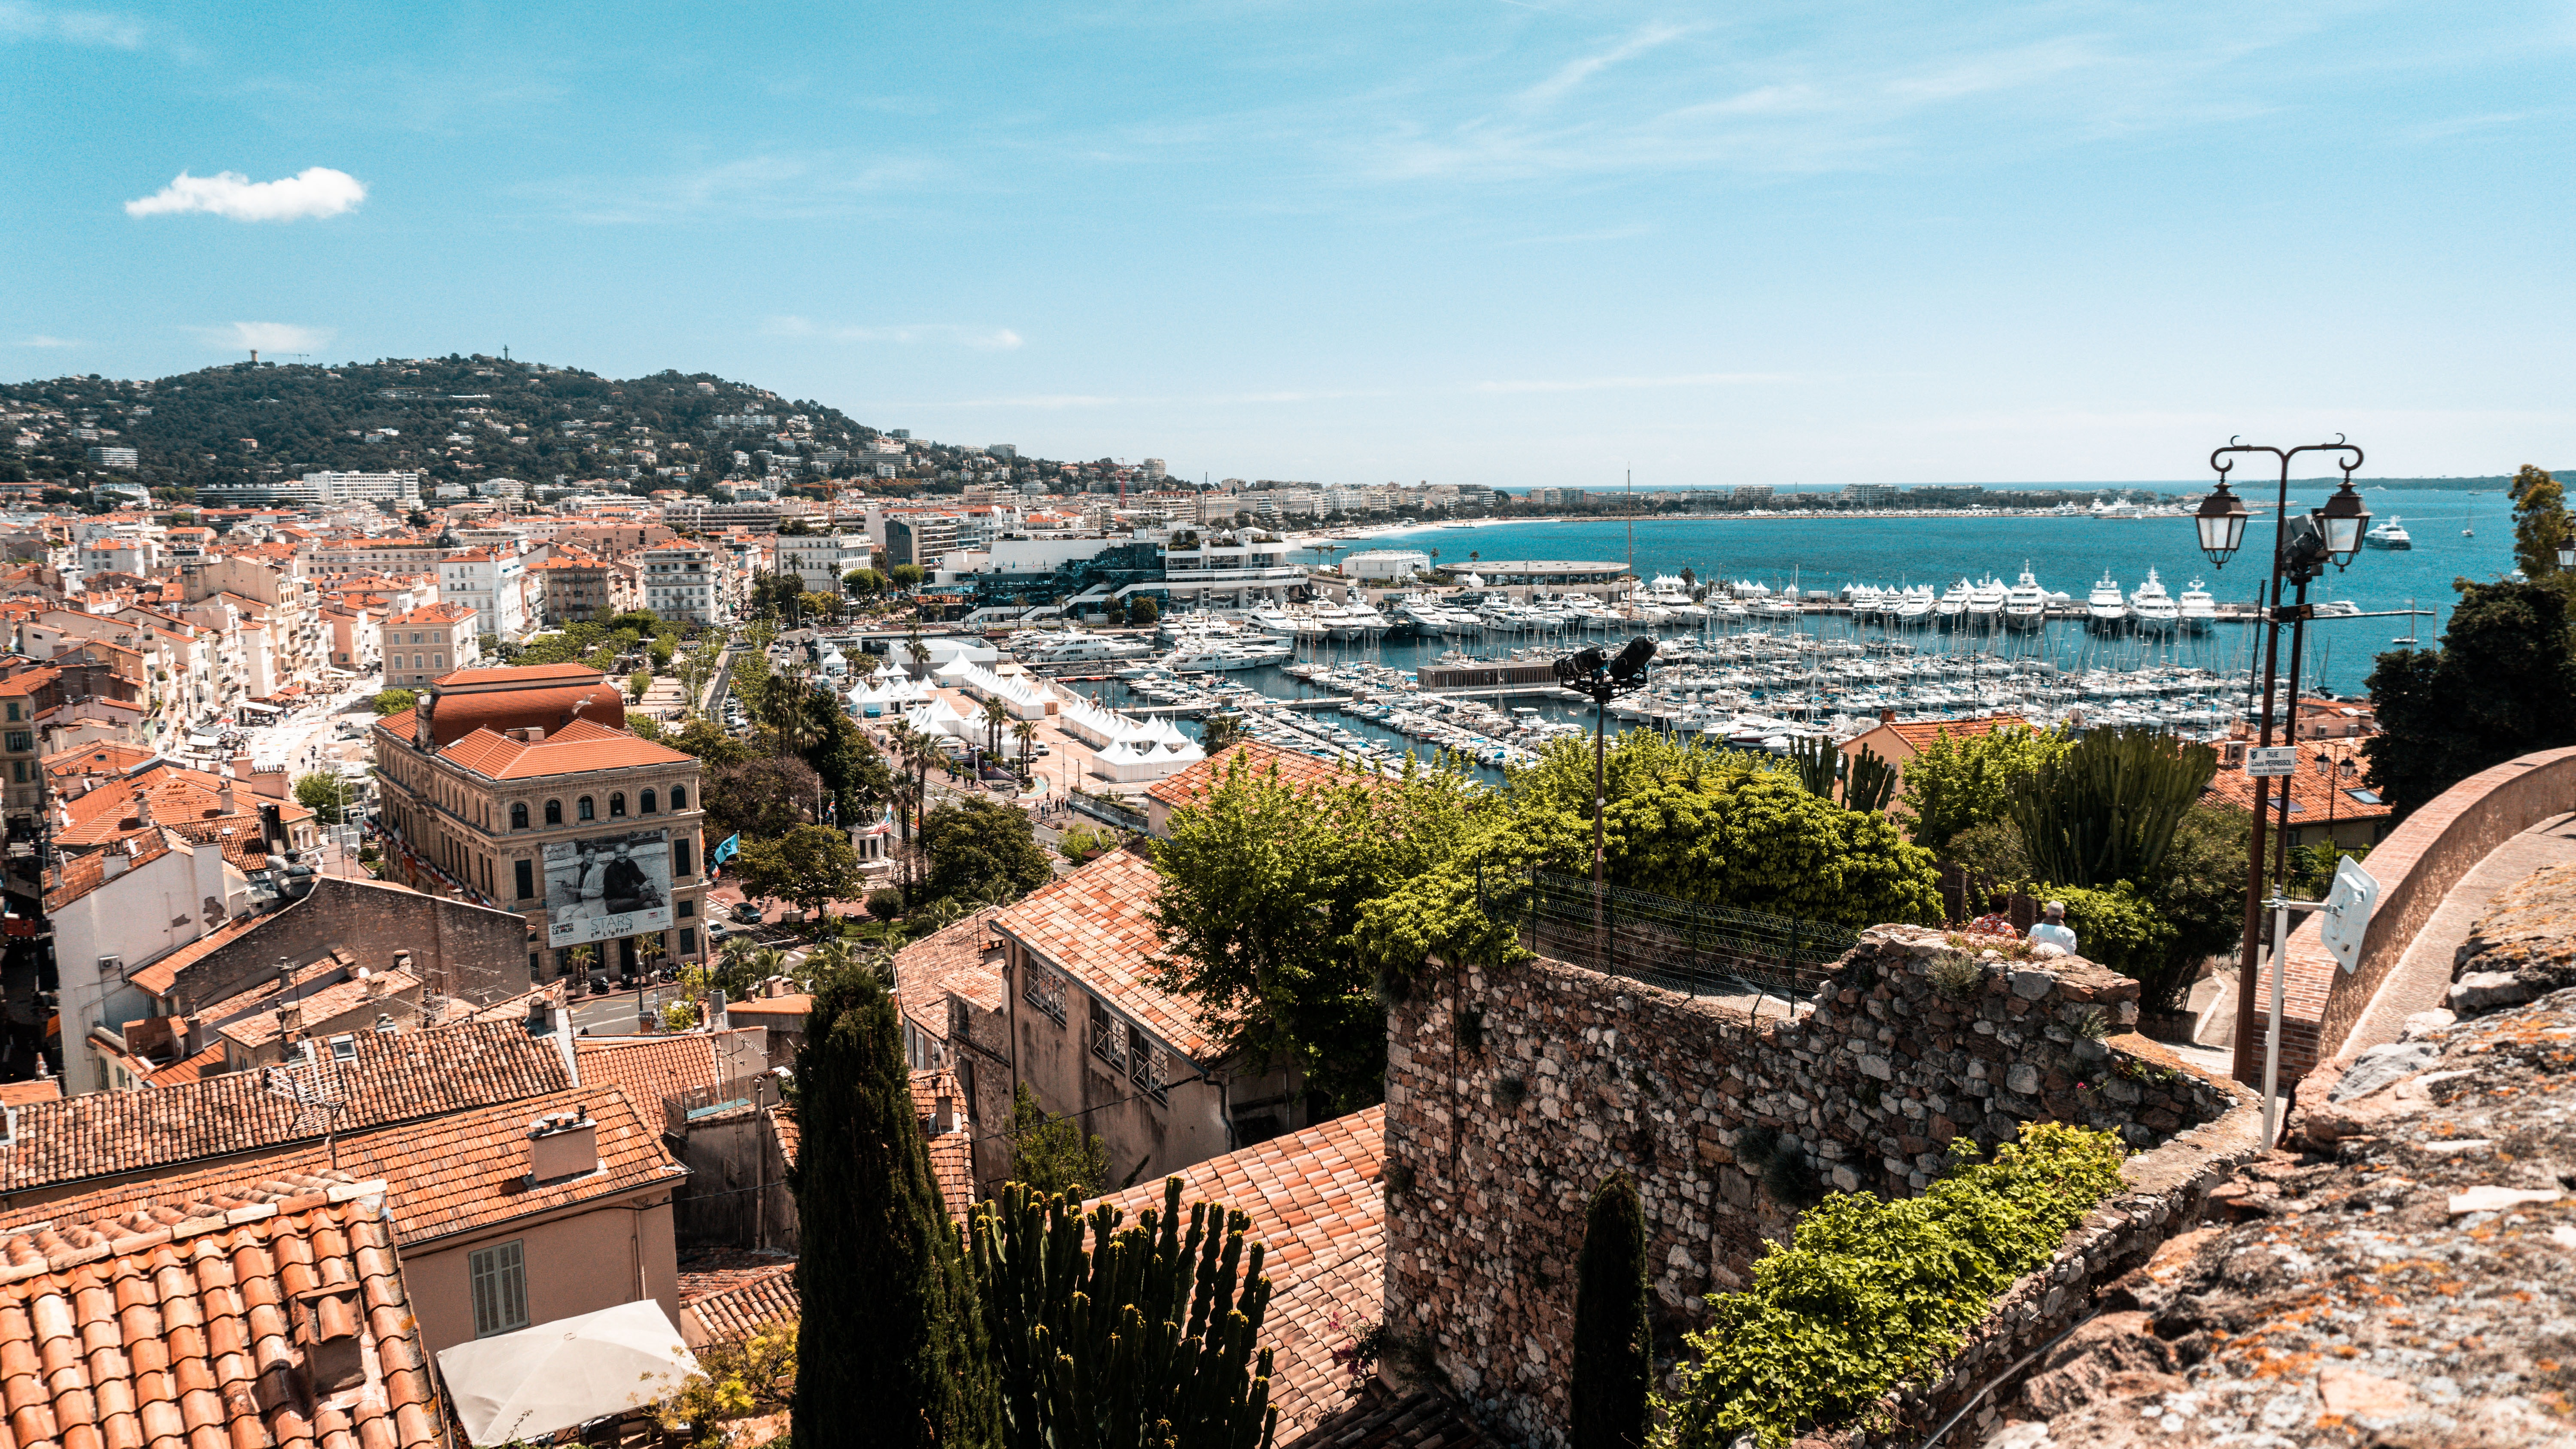 Cannes, France in June